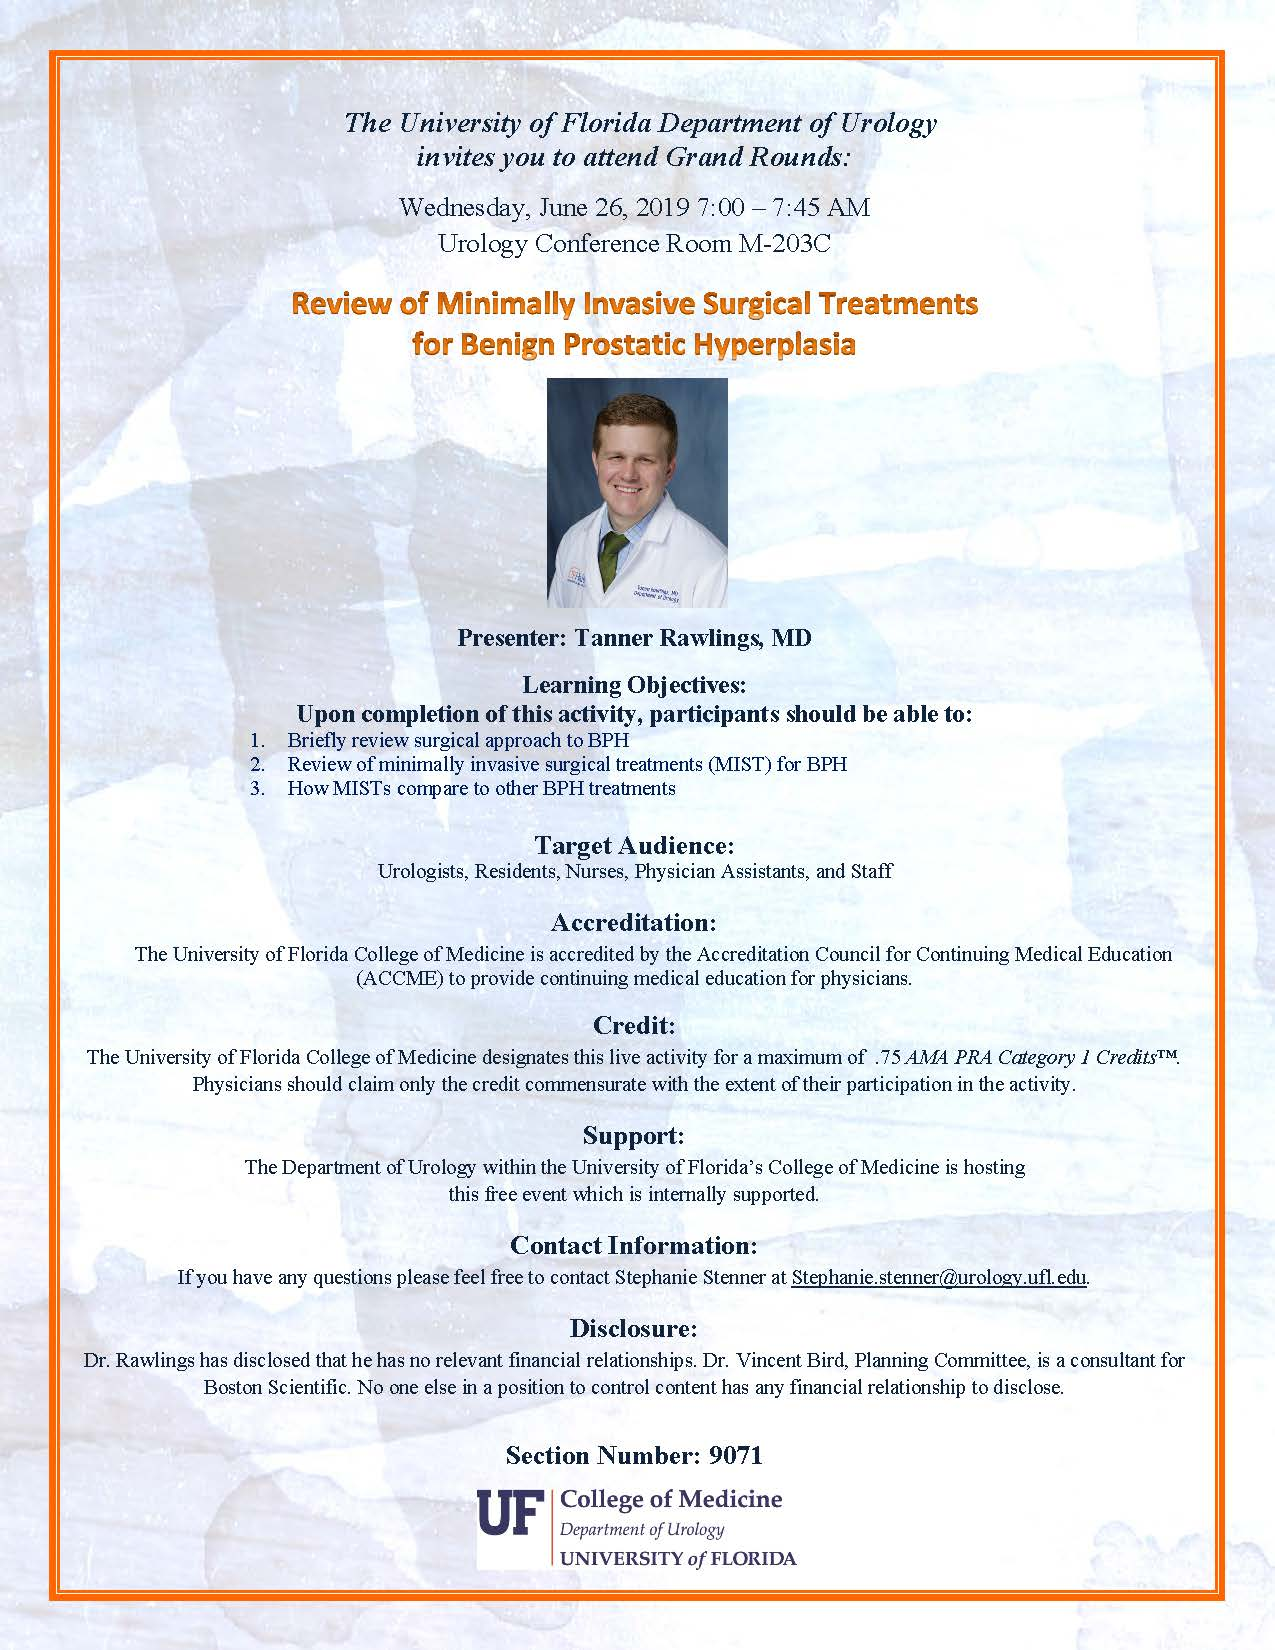 picture of grand rounds flyer for Tanner Rawlings, MD